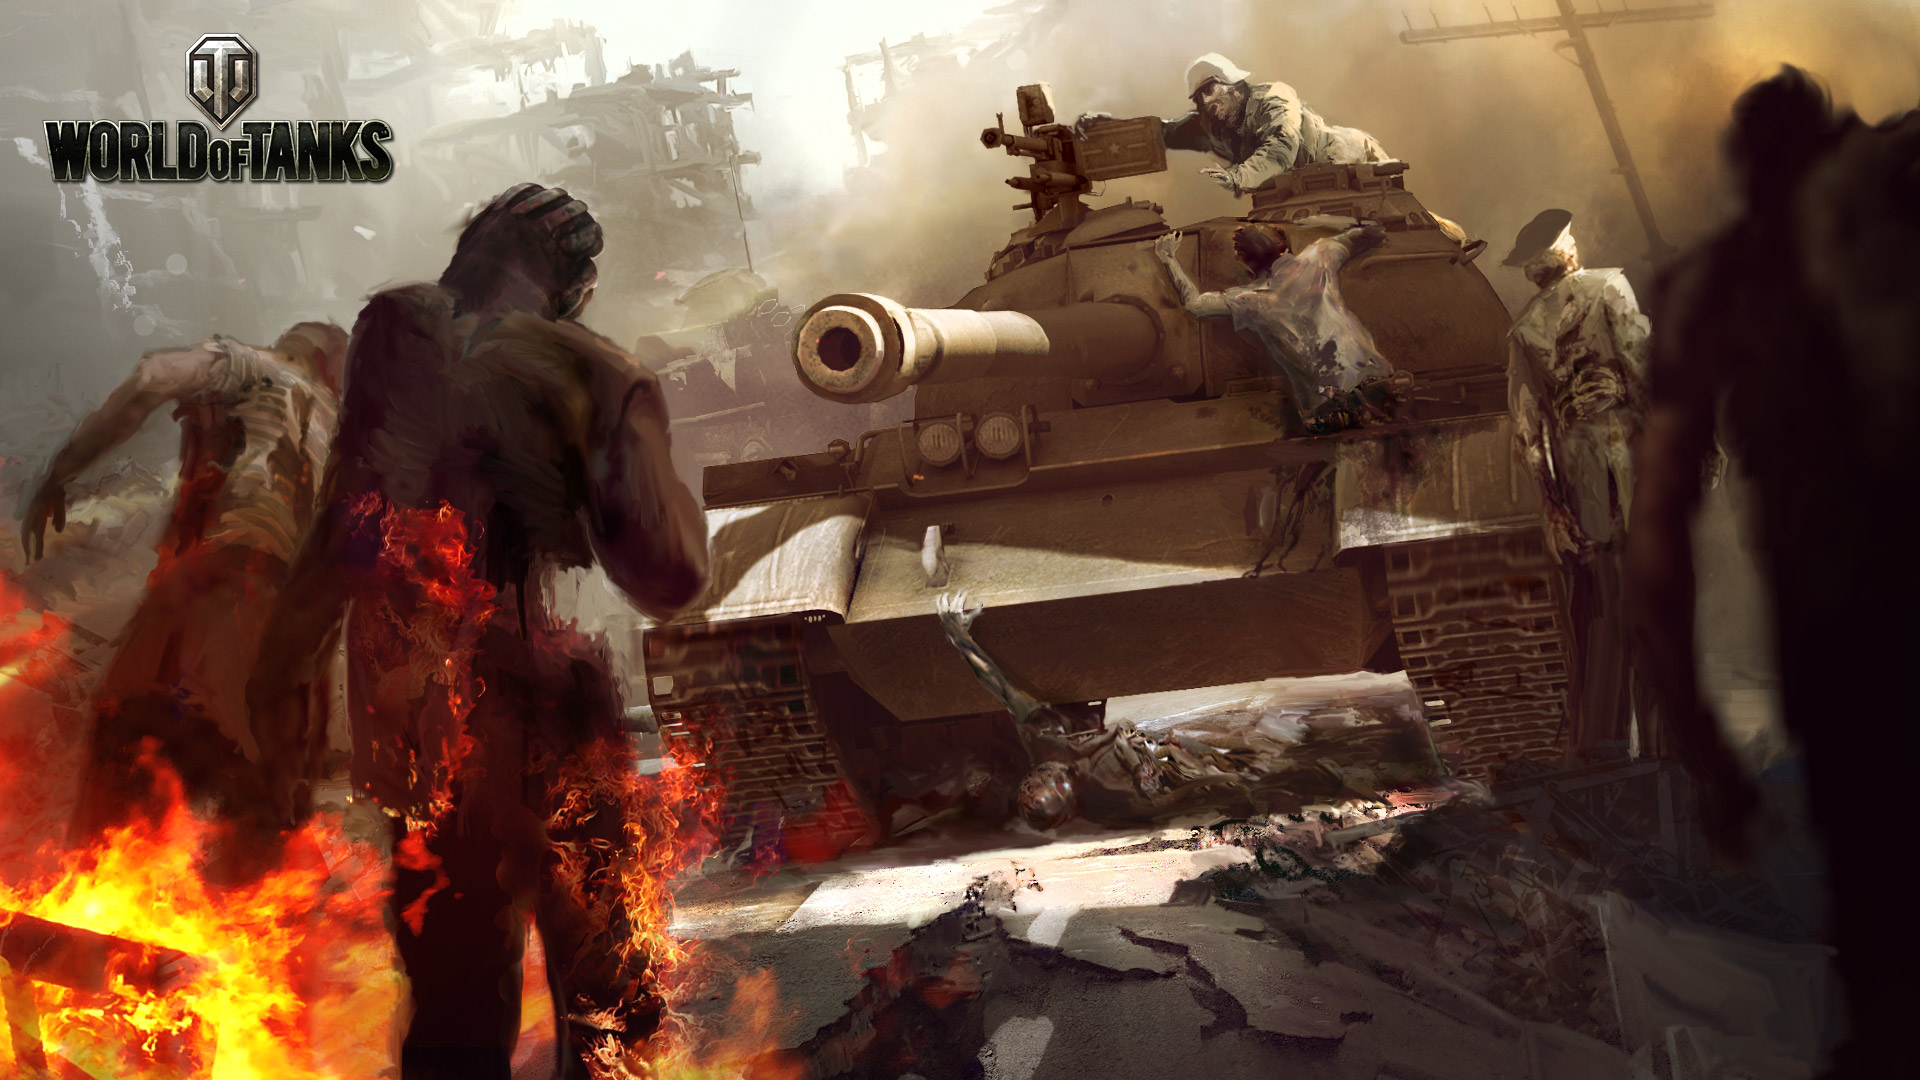 wot_artworks_zombie_image_01.jpg - World of Tanks